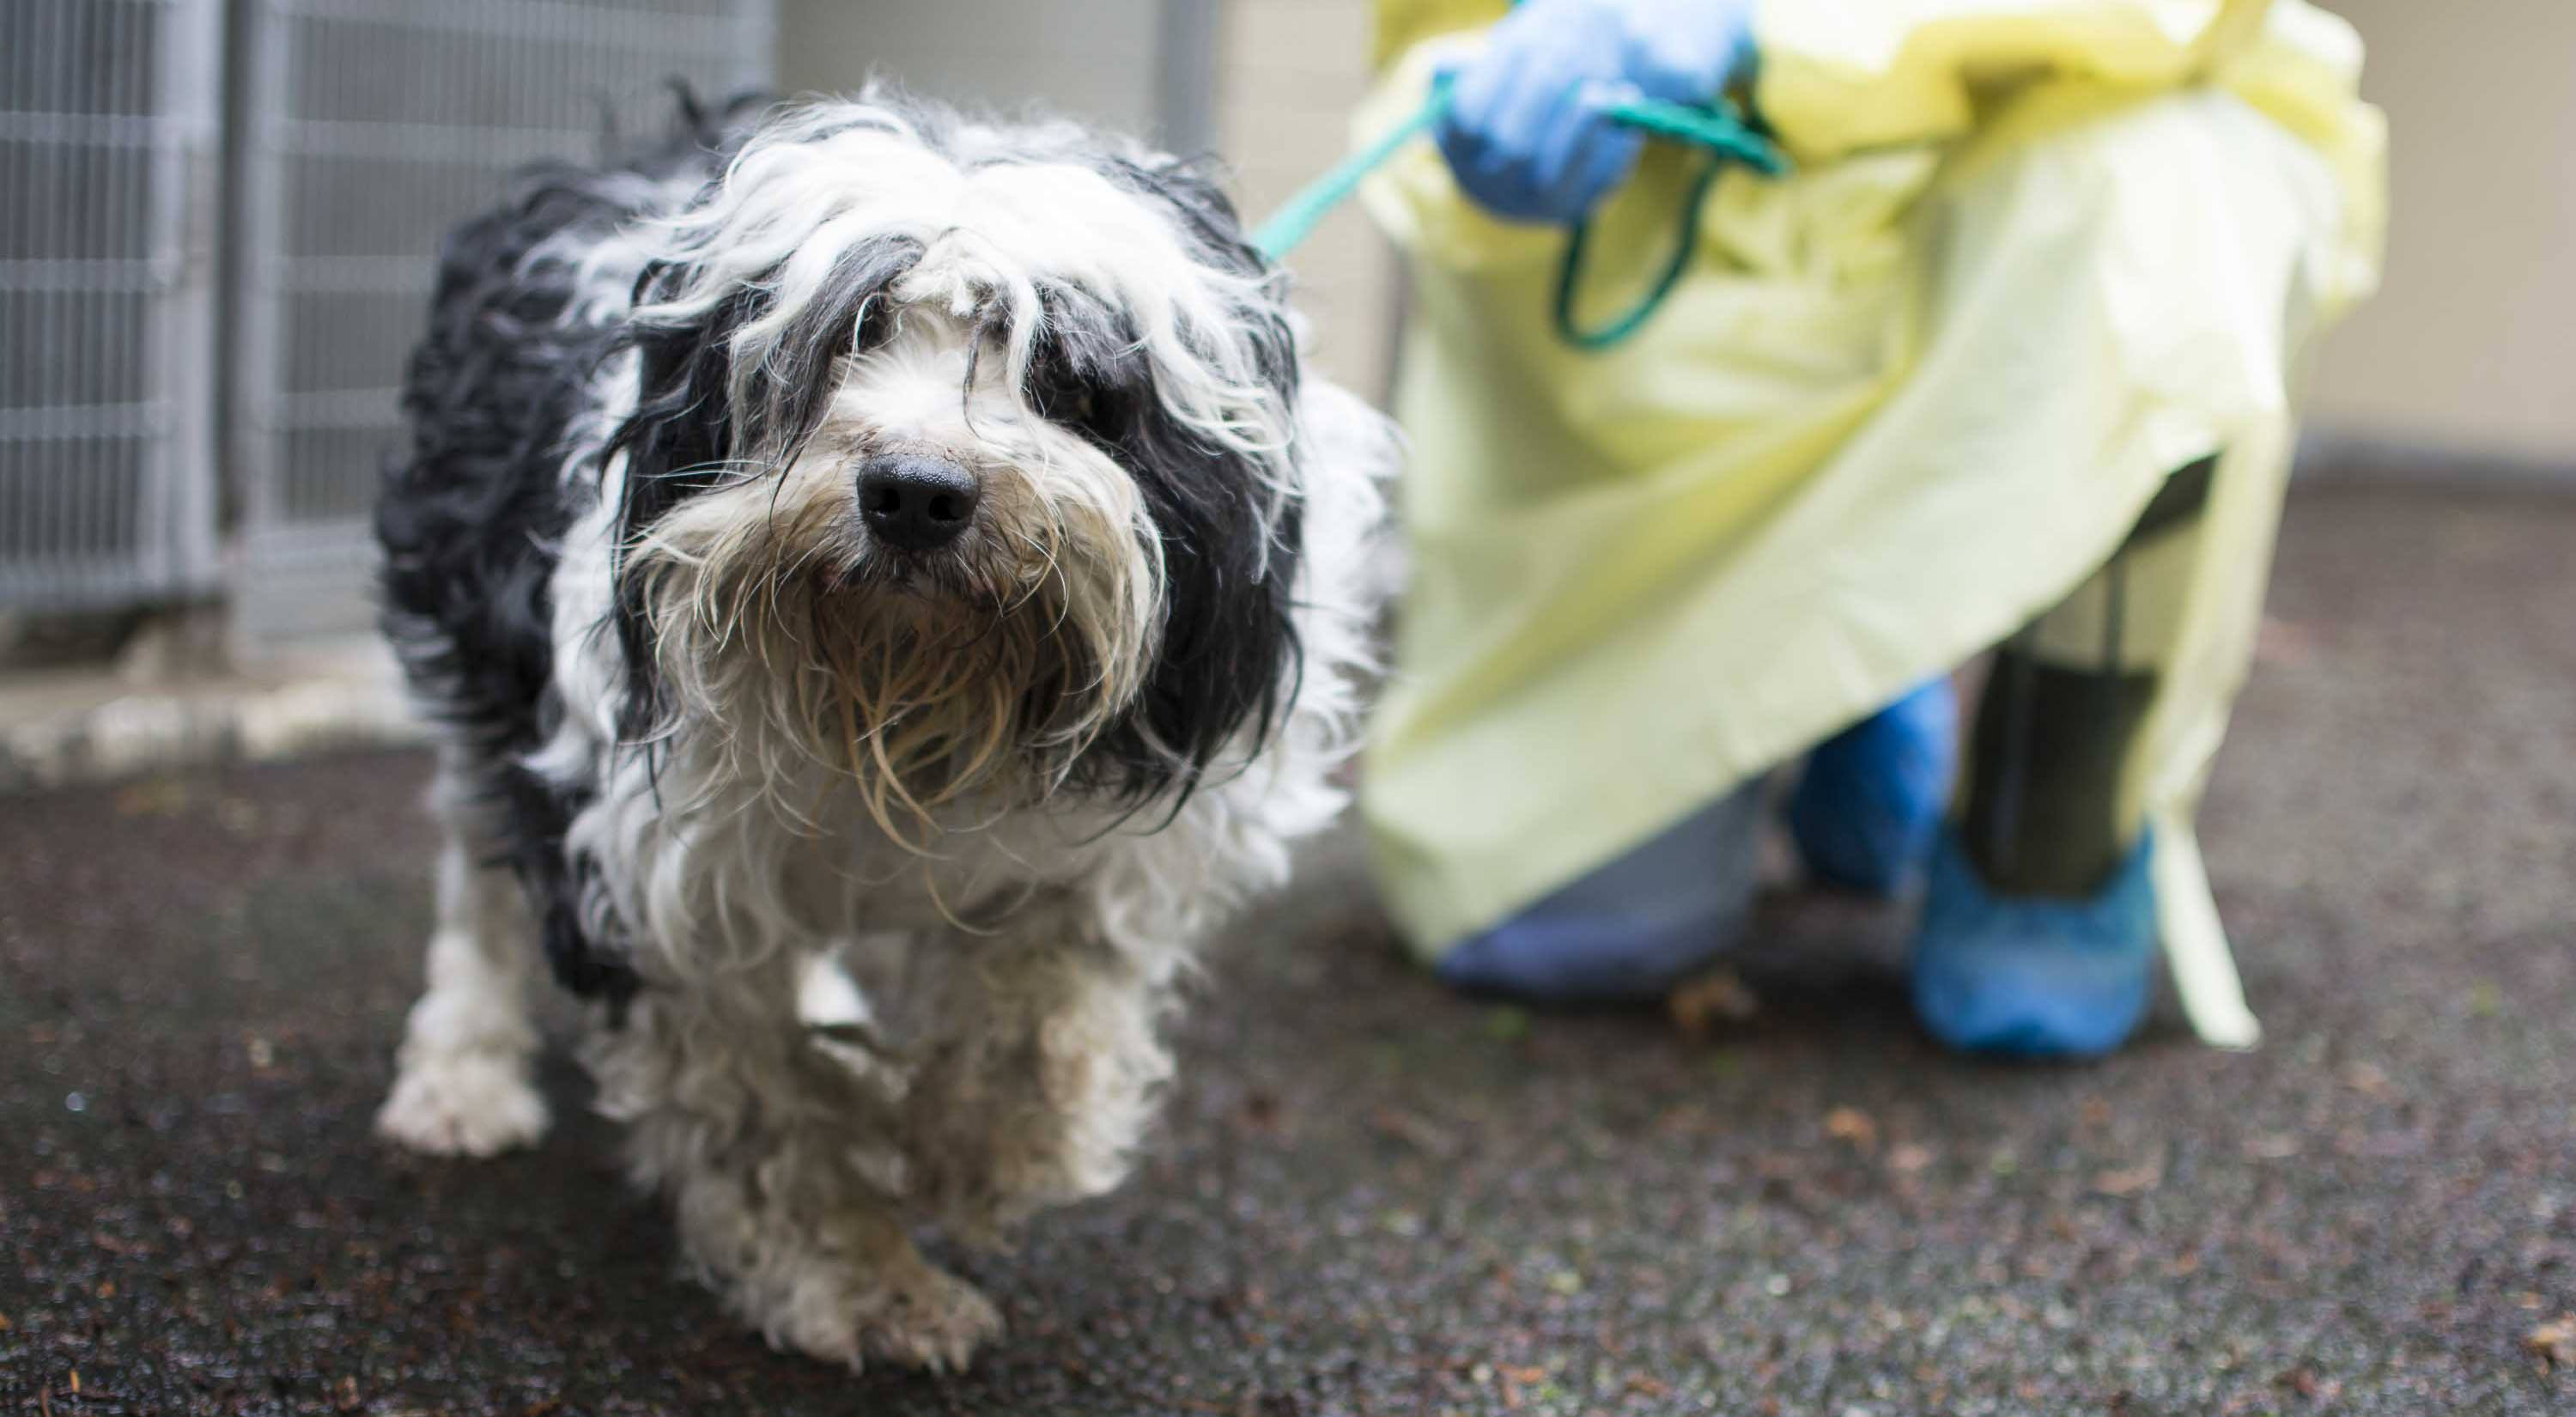 This dog was seized from a squamish breeder spca